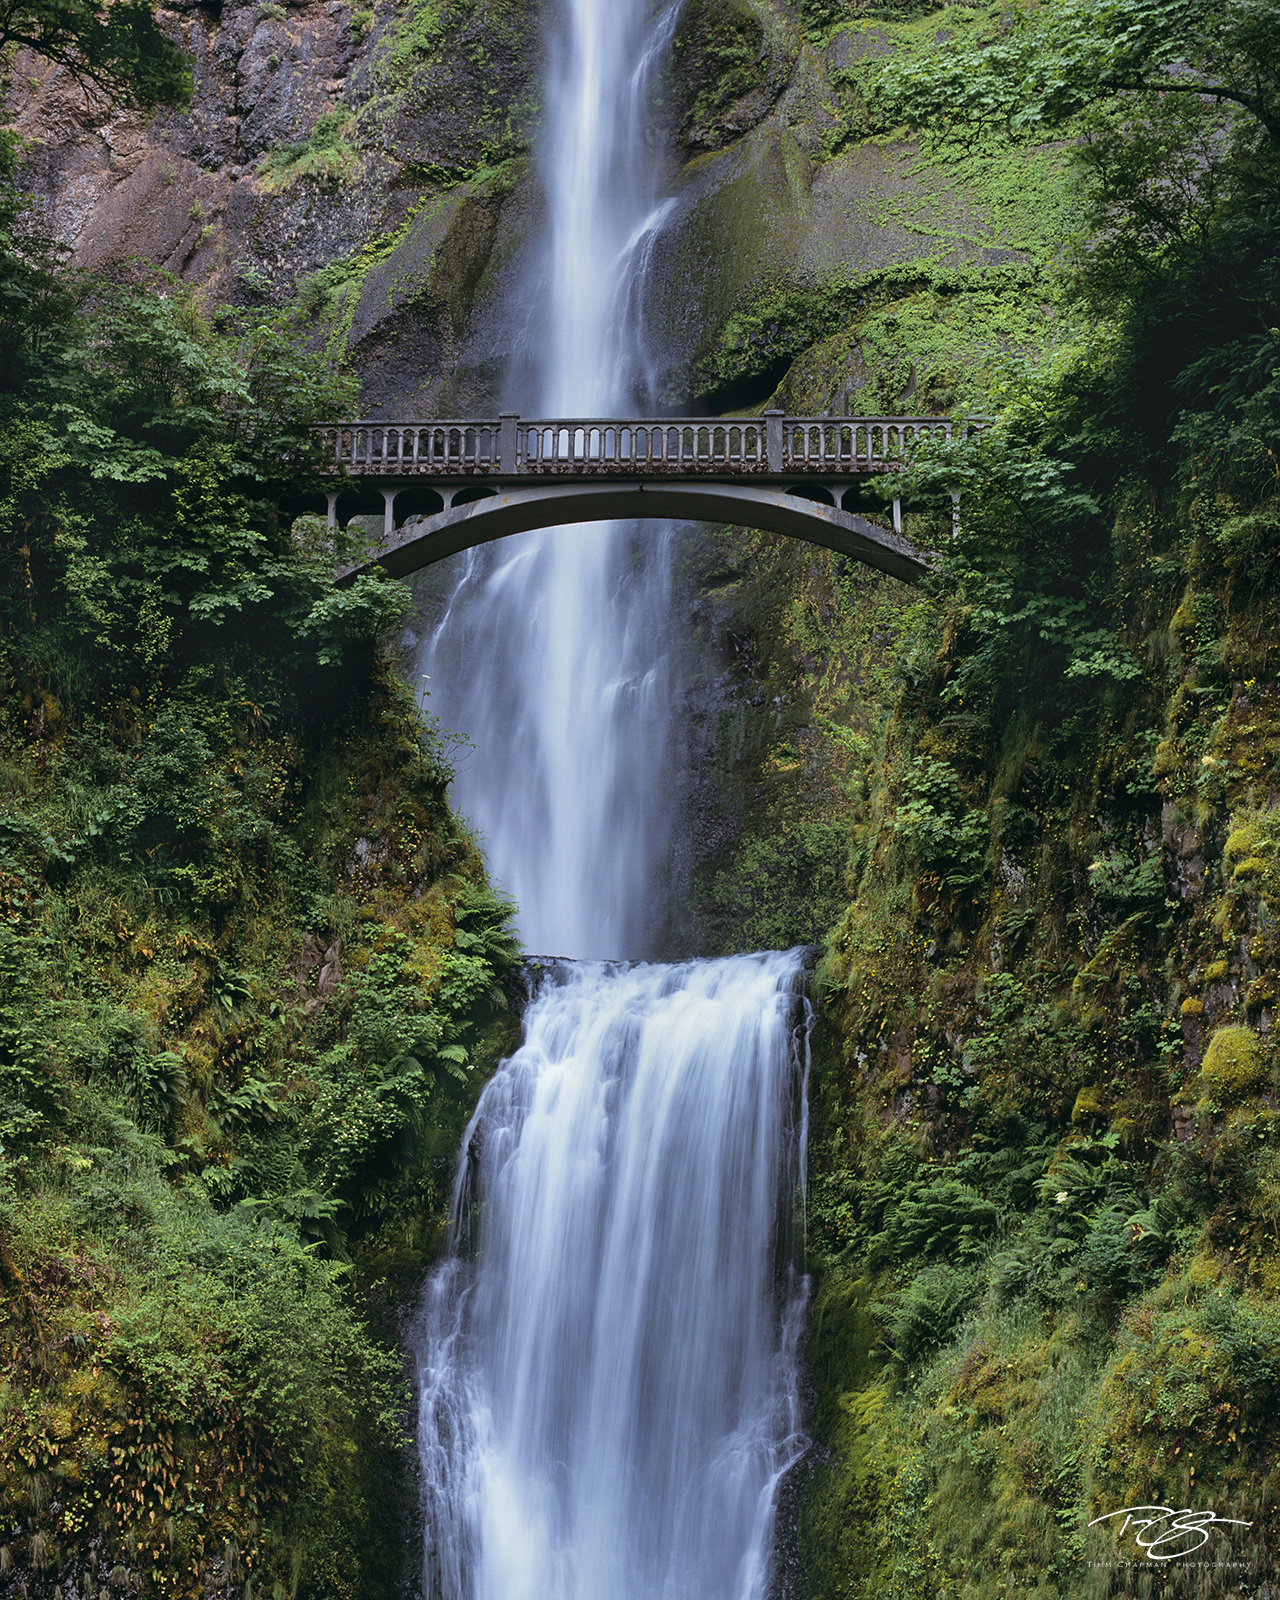 The spectacular Multnomah Falls plunges a total of 620 feet over two cascades passing the moss laden walls of the Columbia River...